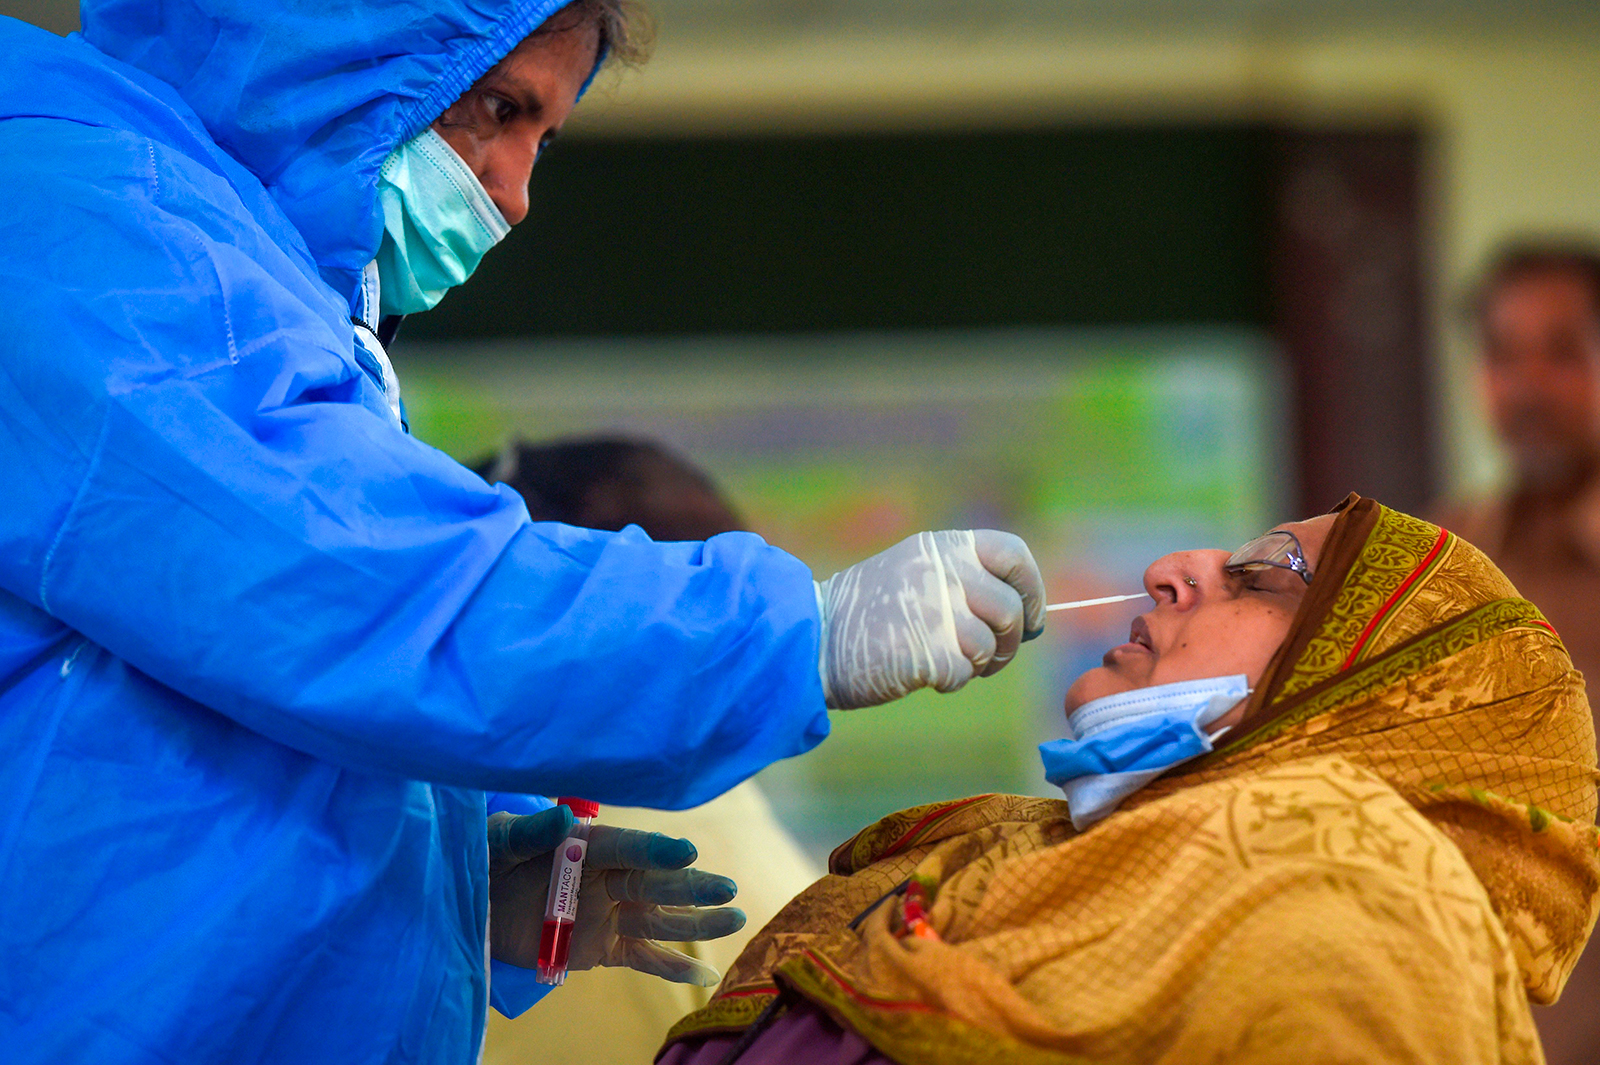 A health official collects a swab sample from a woman to test for Covid-19 in Karachi, Pakistan on September 14.